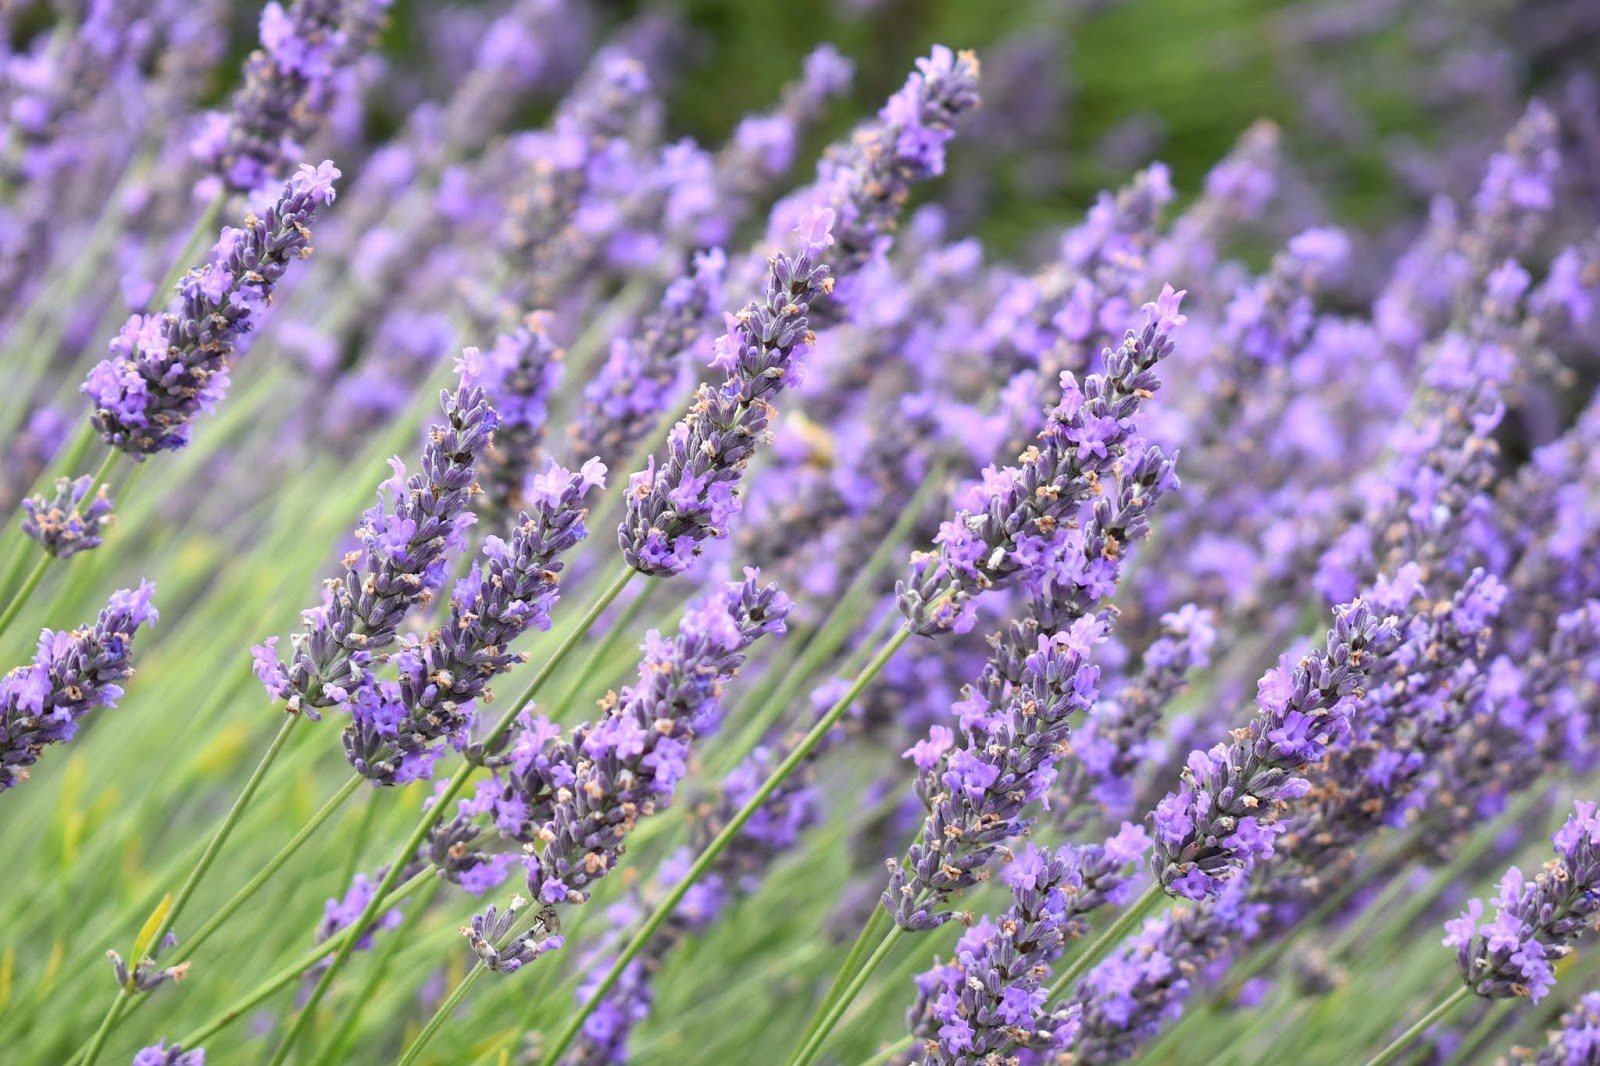 Where to Find Lavender Fields in the North of England